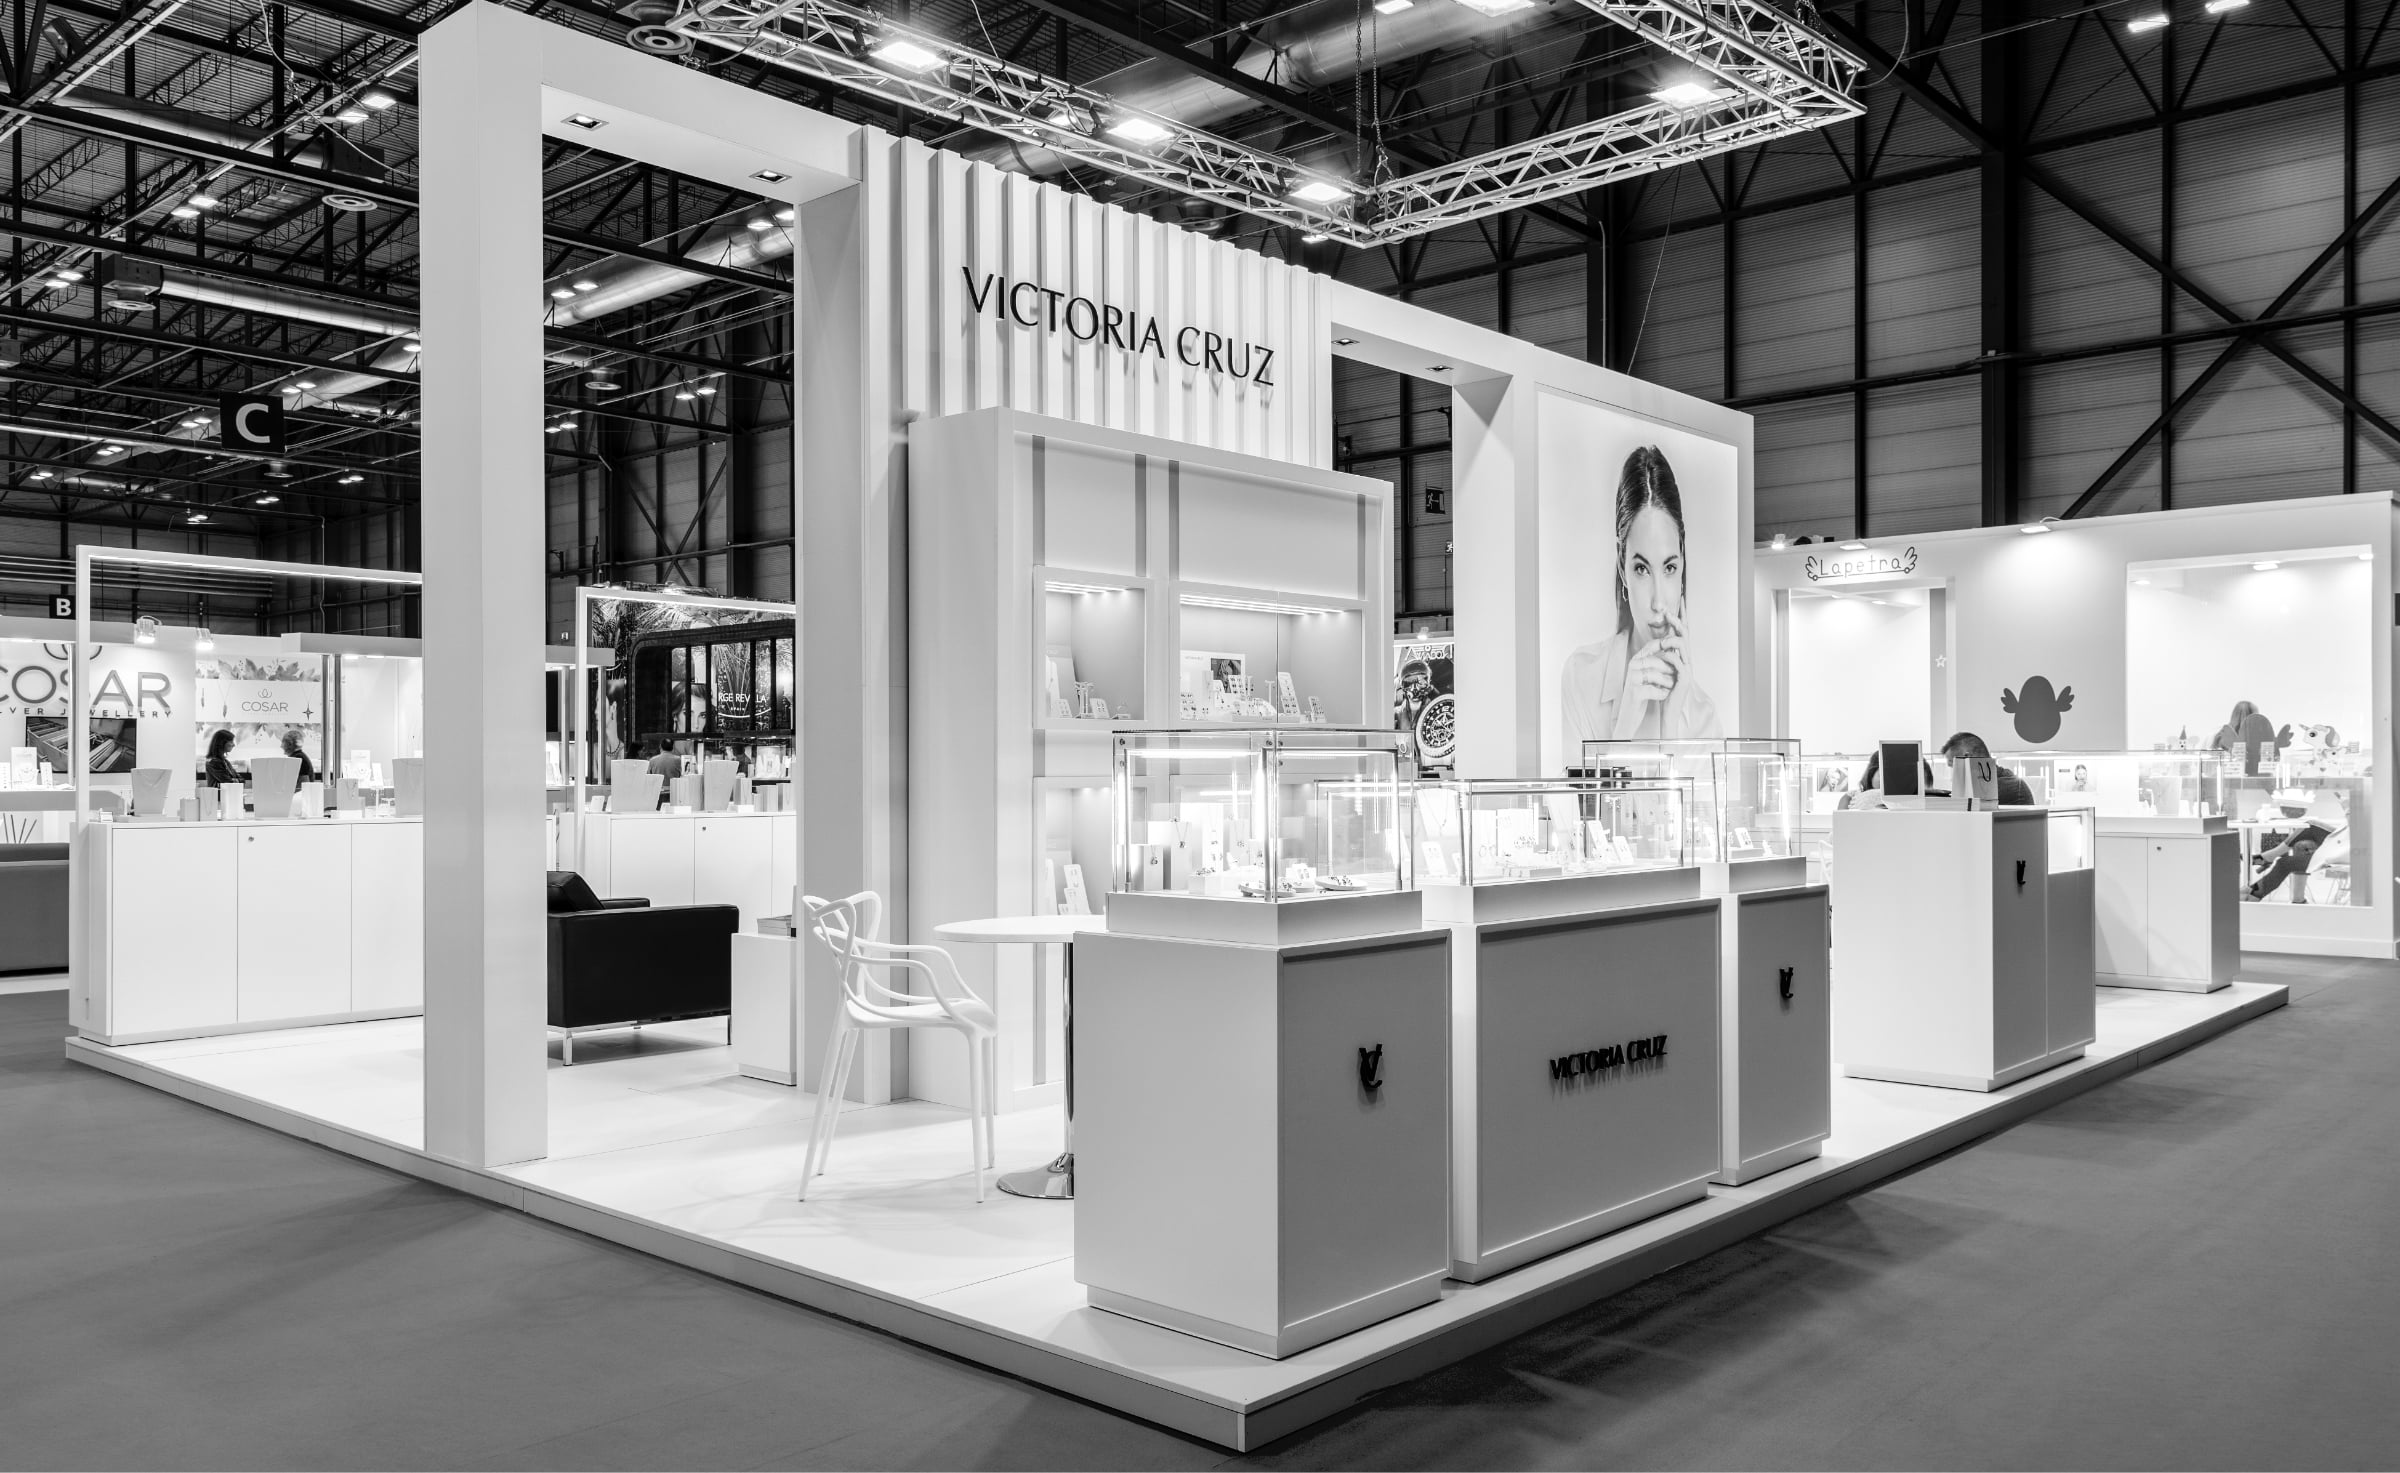 Victoria Cruz stand panorama at an exhibition